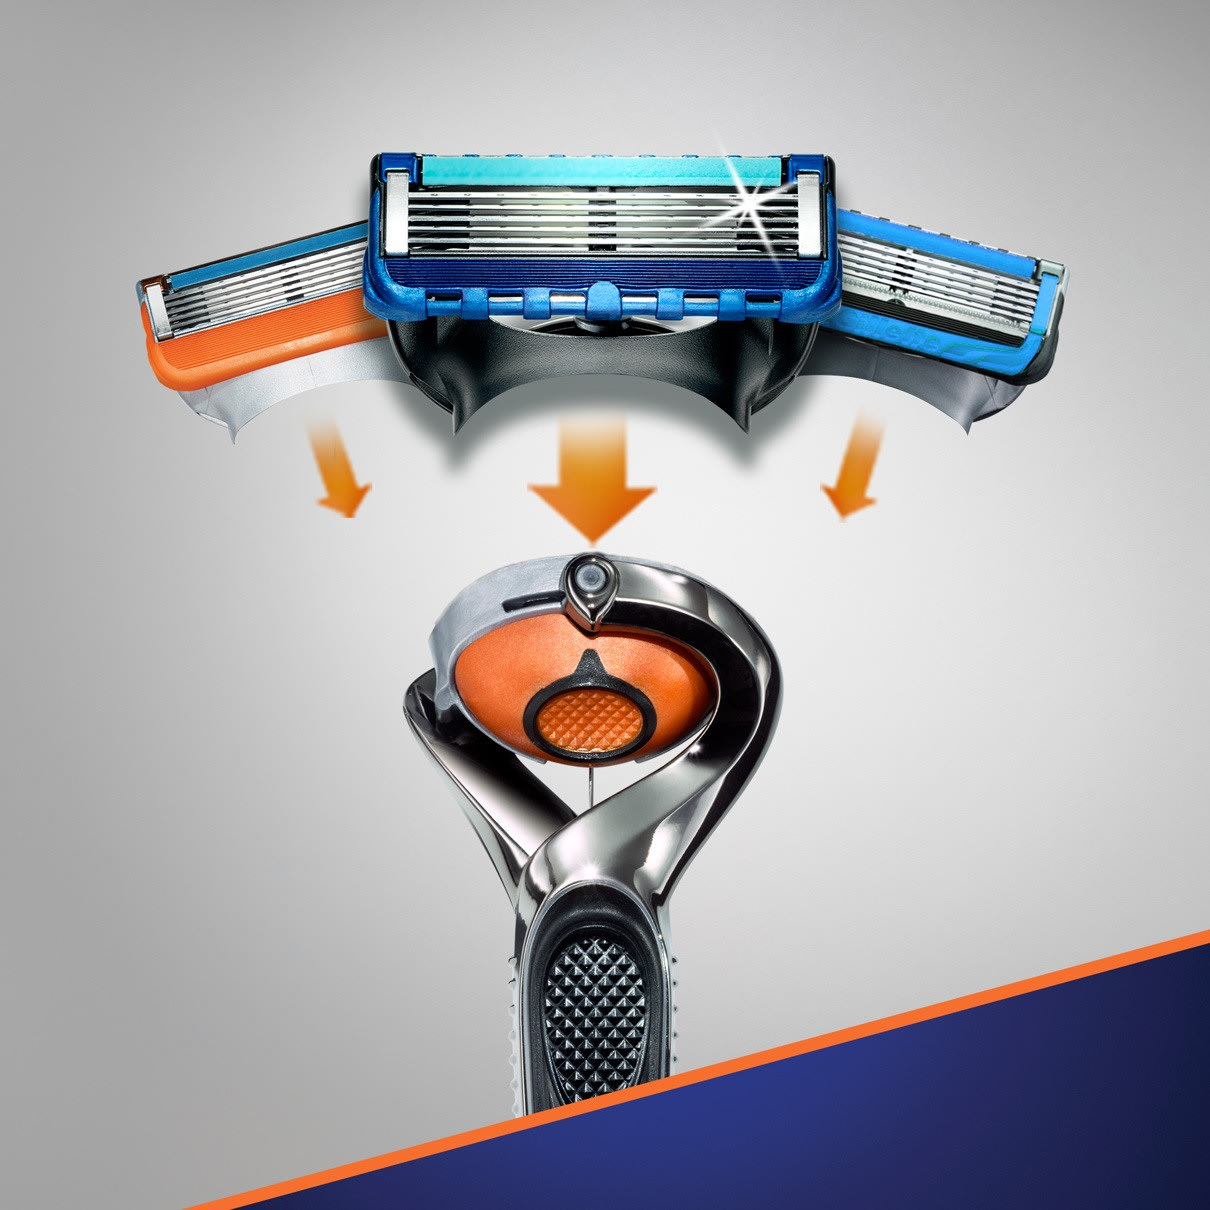 8. Fits all Fusion5 blade refills